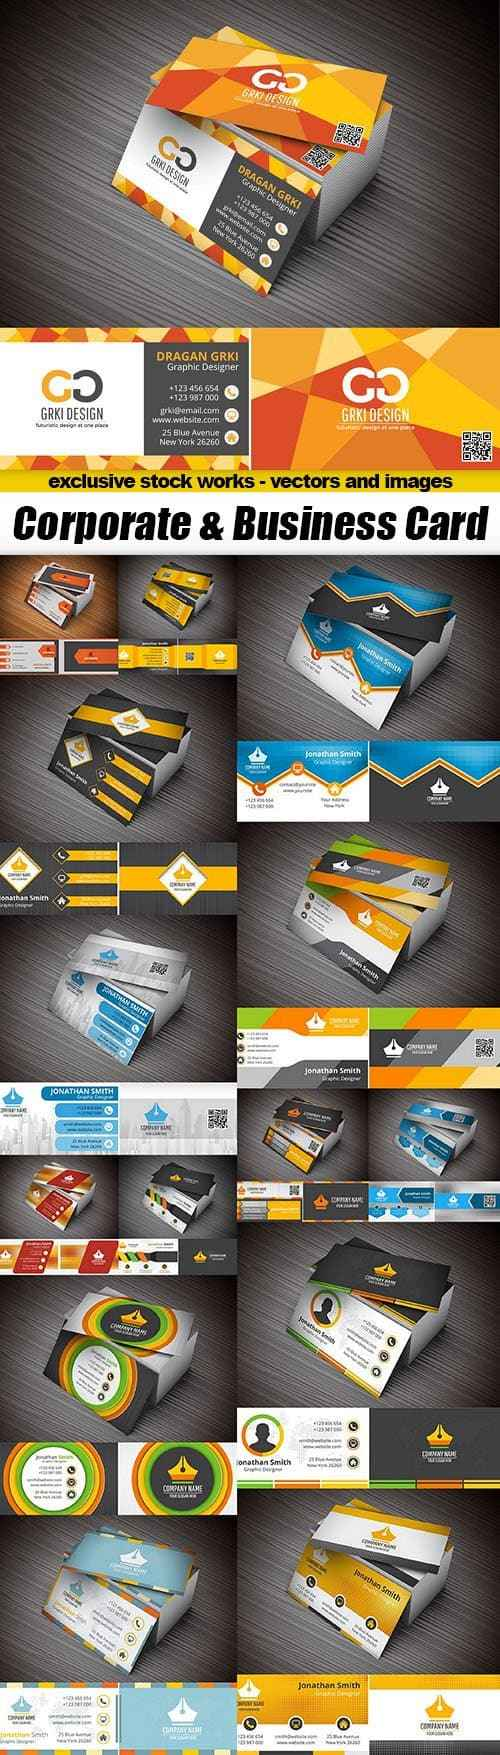 Corporate & Business Card – 15xEPS